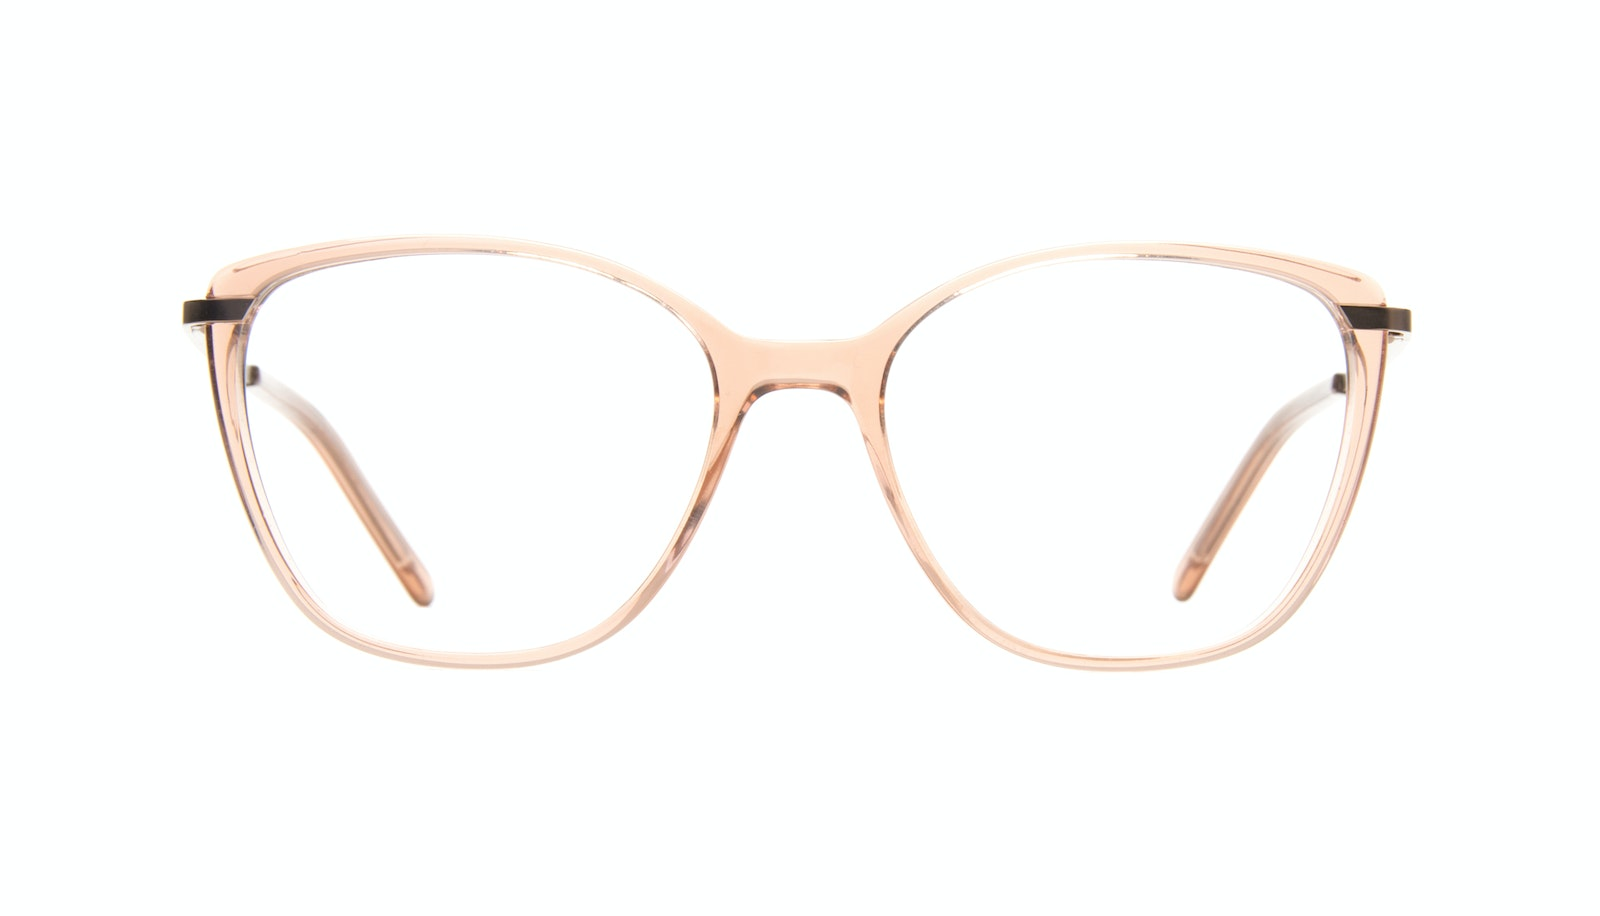 Affordable Fashion Glasses Cat Eye Rectangle Square Eyeglasses Women Illusion Rose